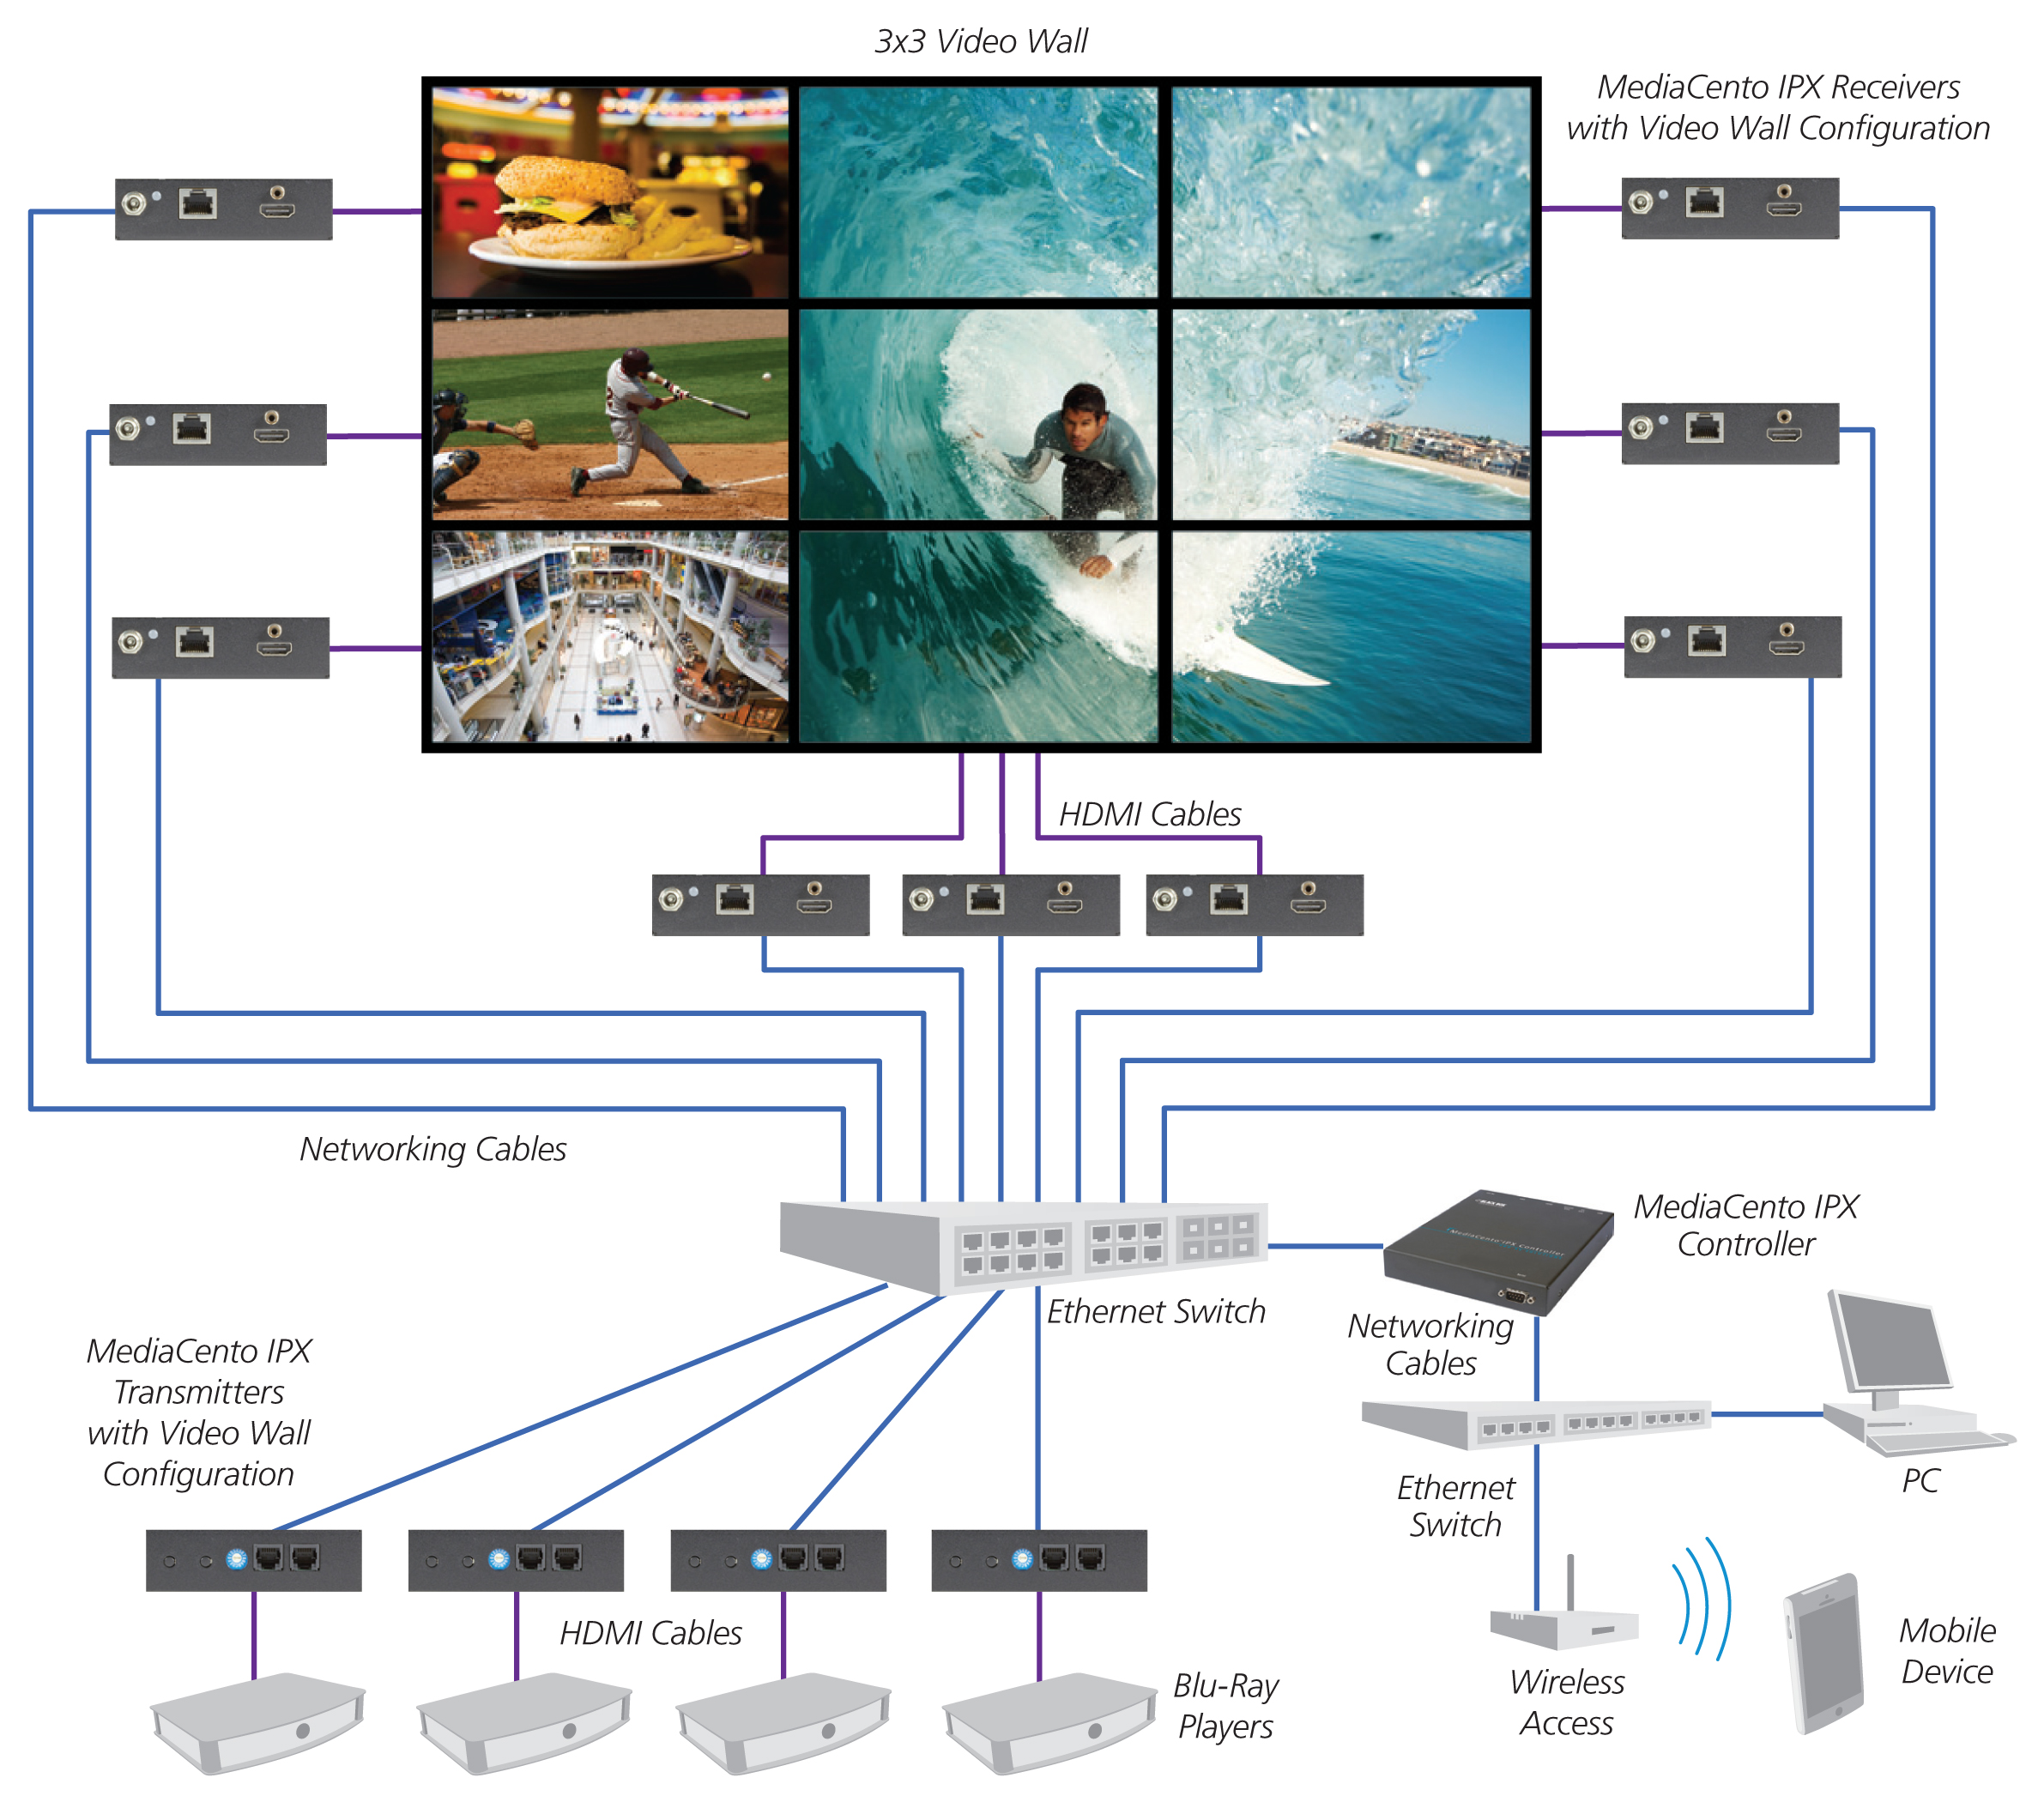 Hdmi Over Ip Network Distribution Mediacento Ipx Schematic For The Parallel Port Driver Matrix As Multicast Mode Application With Video Wall And Switching Configuration